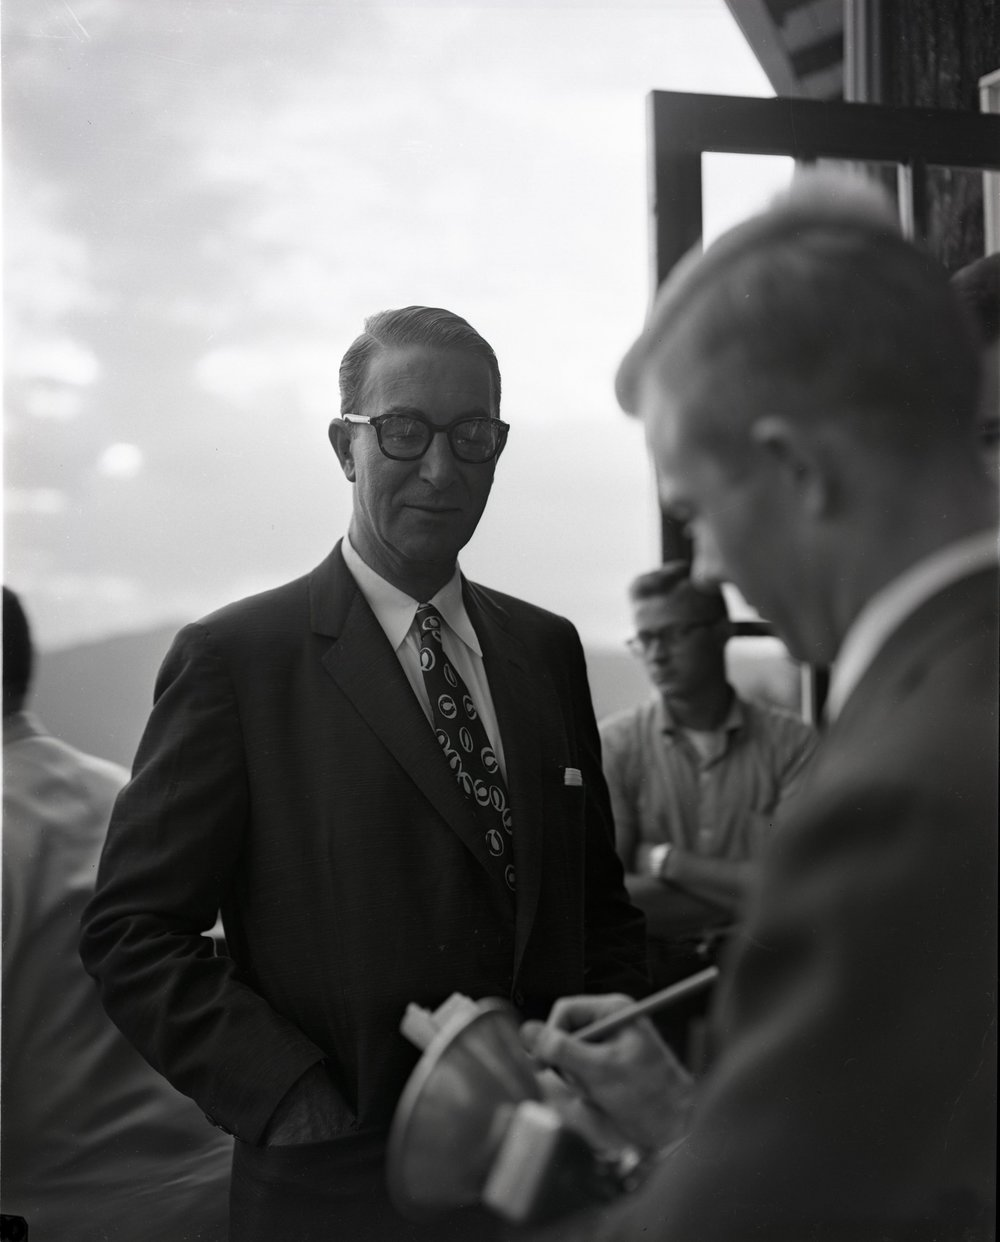 Reporters interview Sen. Estes Kefauver (D-TN) at Mayview Manor in Blowing Rock, NC, in August 1956. This image was shot by Palmer Blair and is part of the forthcoming Palmer Blair Collection, Digital Watauga Project.